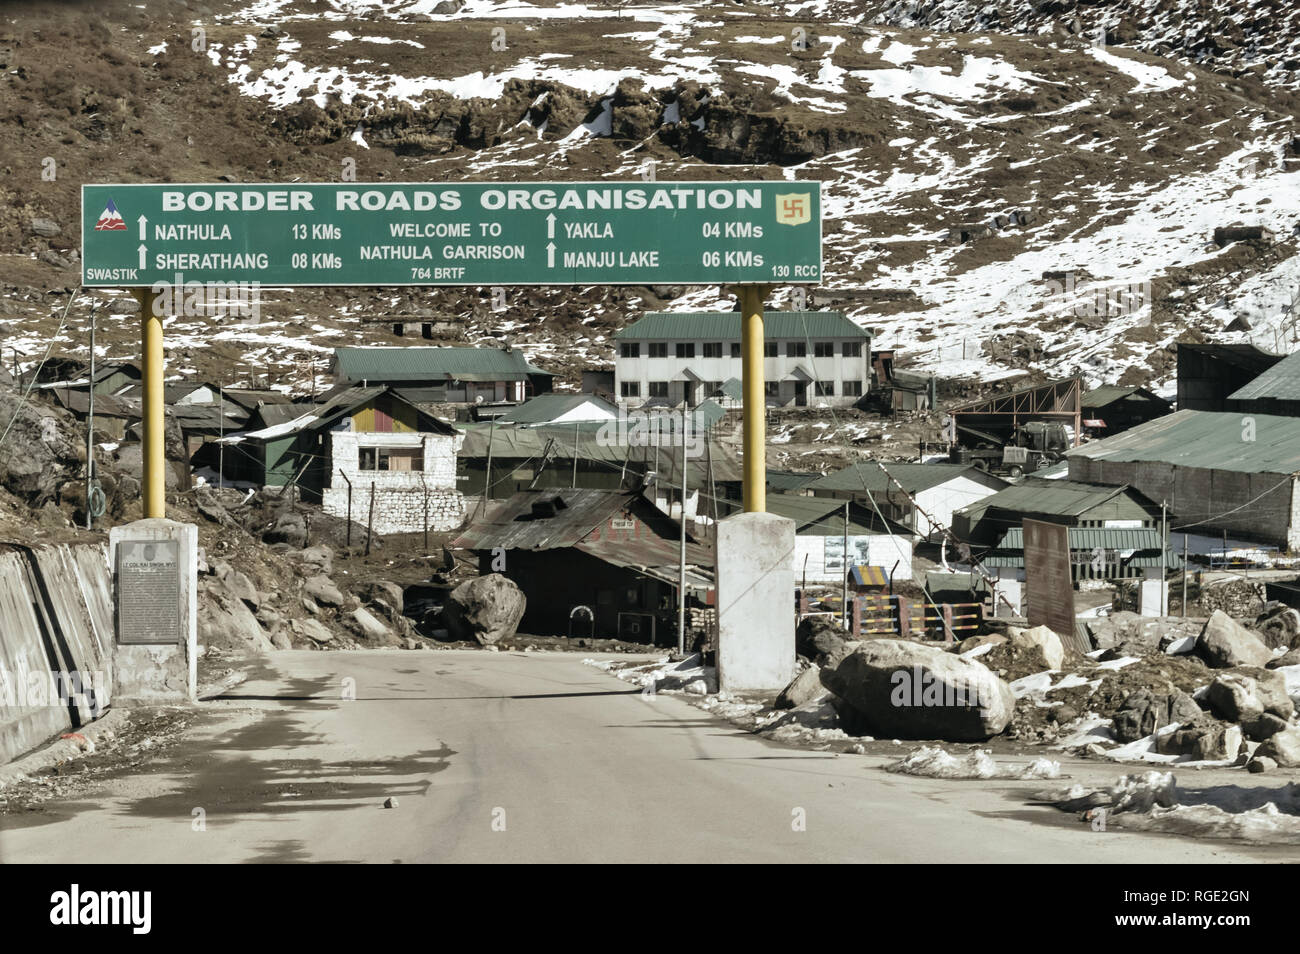 Traffic directional sign board on highway in the entrance of the city near India China border near Nathu La mountain pass in the Himalayas which conne - Stock Image